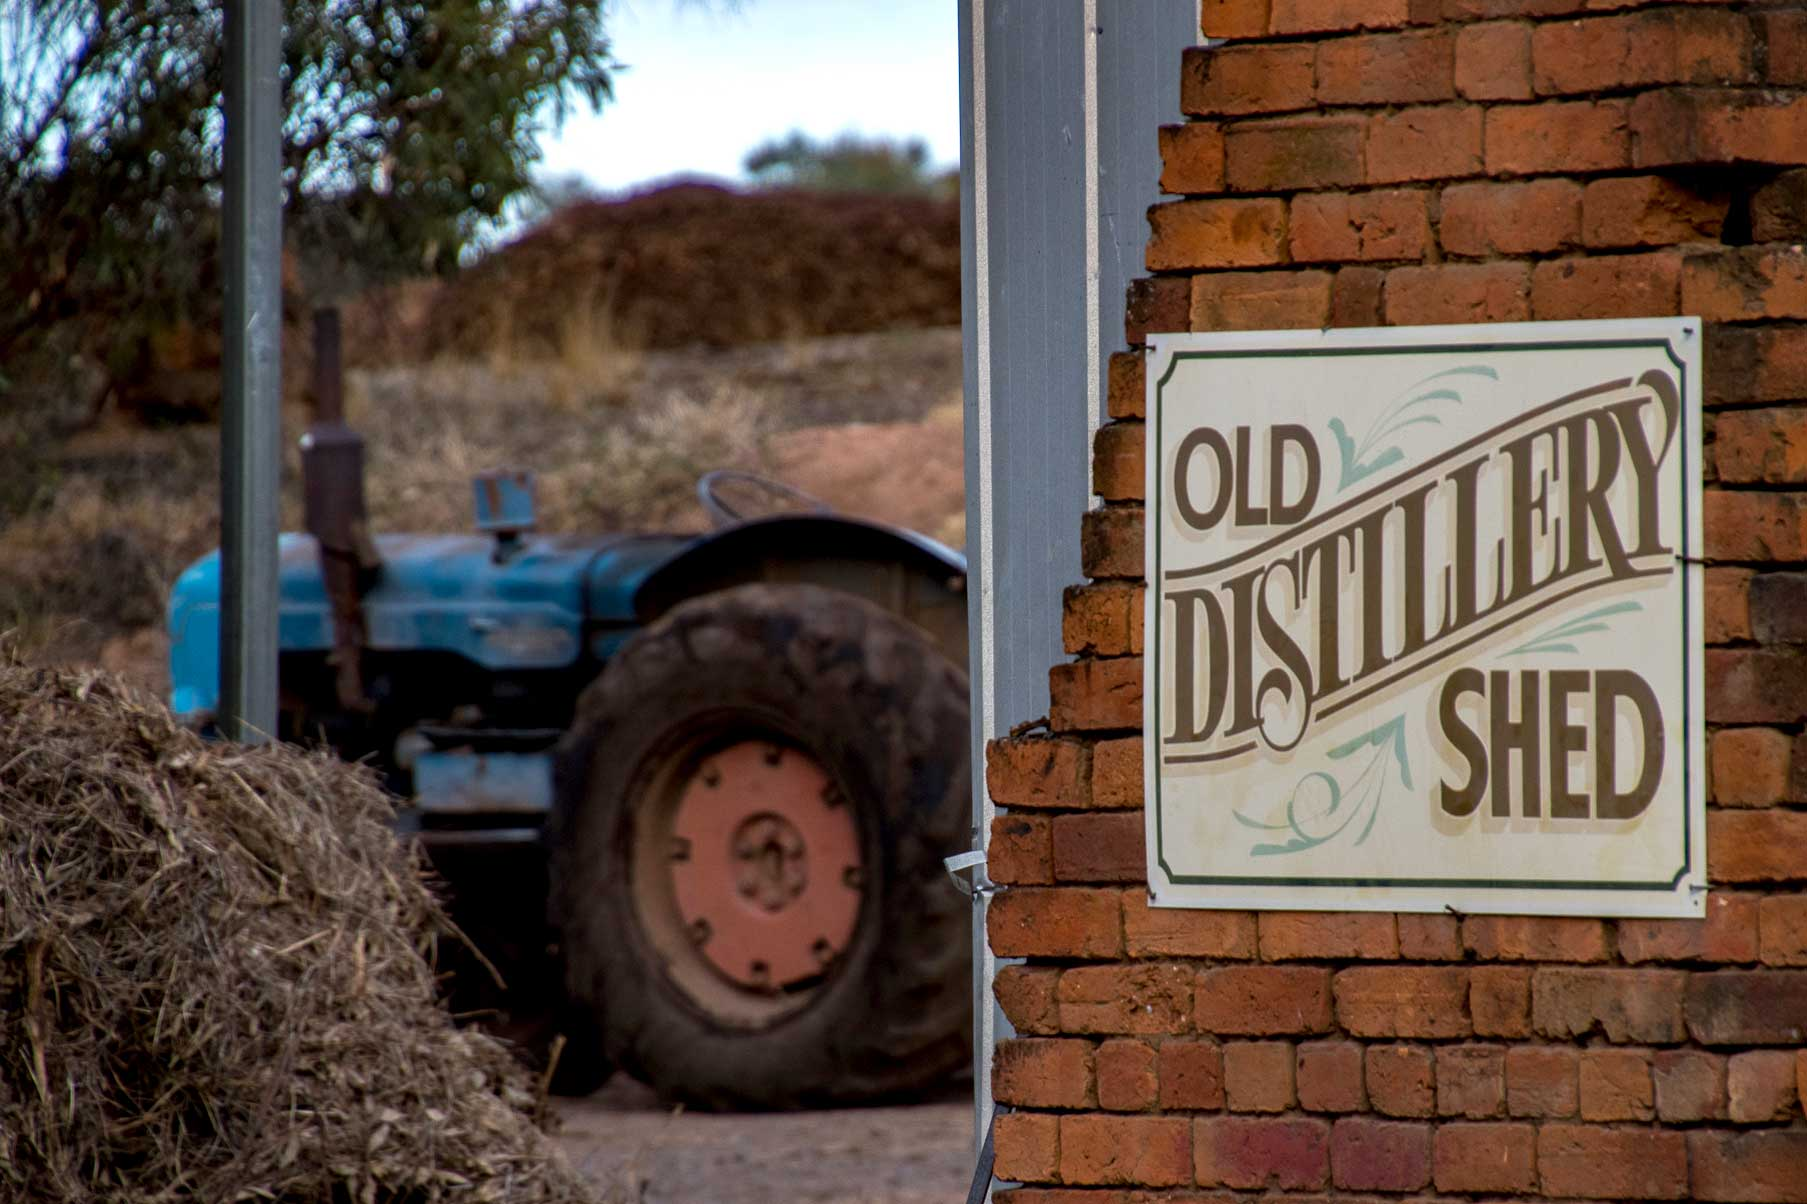 old-distillery-shed-0225